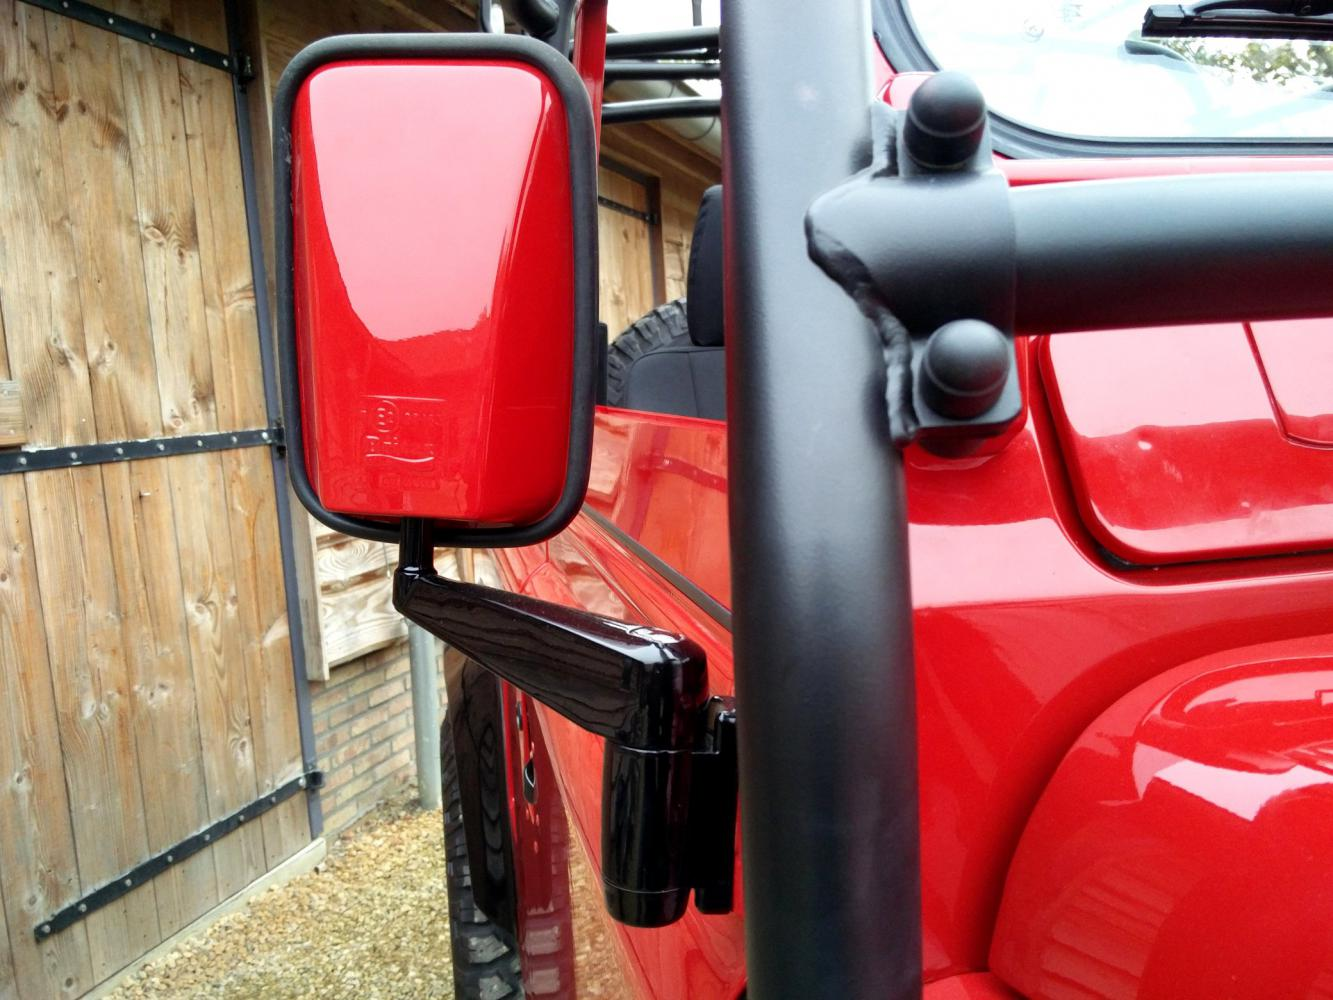 Click image for larger version  Name:1992 LR LHD Defender 90 Red 200 Tdi A day 15 close mirror.jpg Views:49 Size:154.7 KB ID:323817